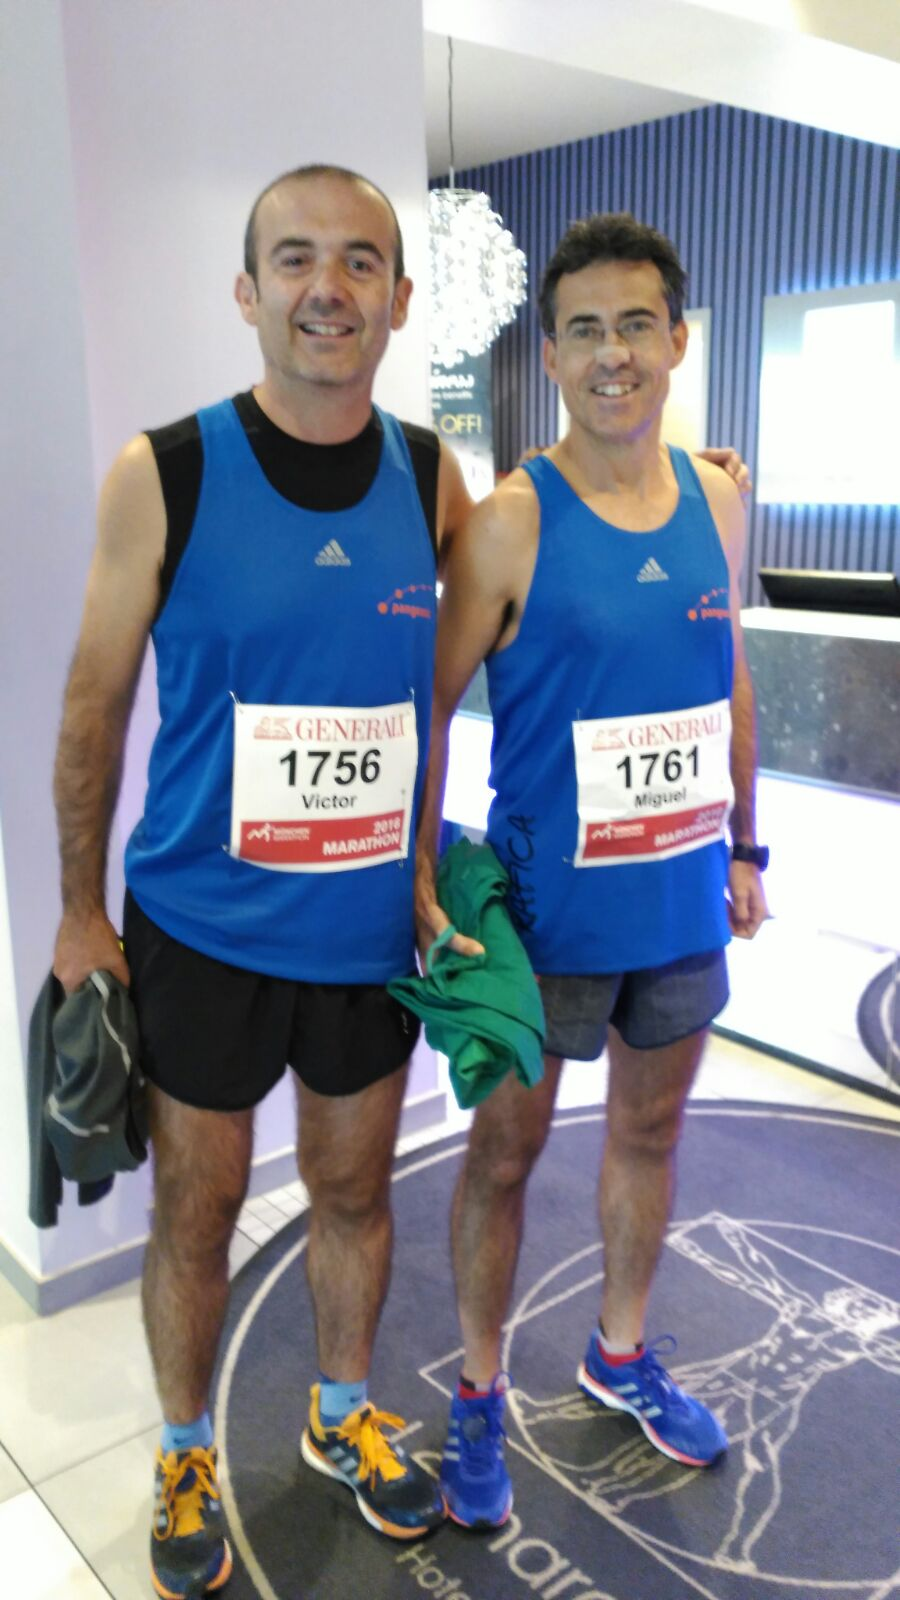 Two members of Pangeanic's running team ready for the race